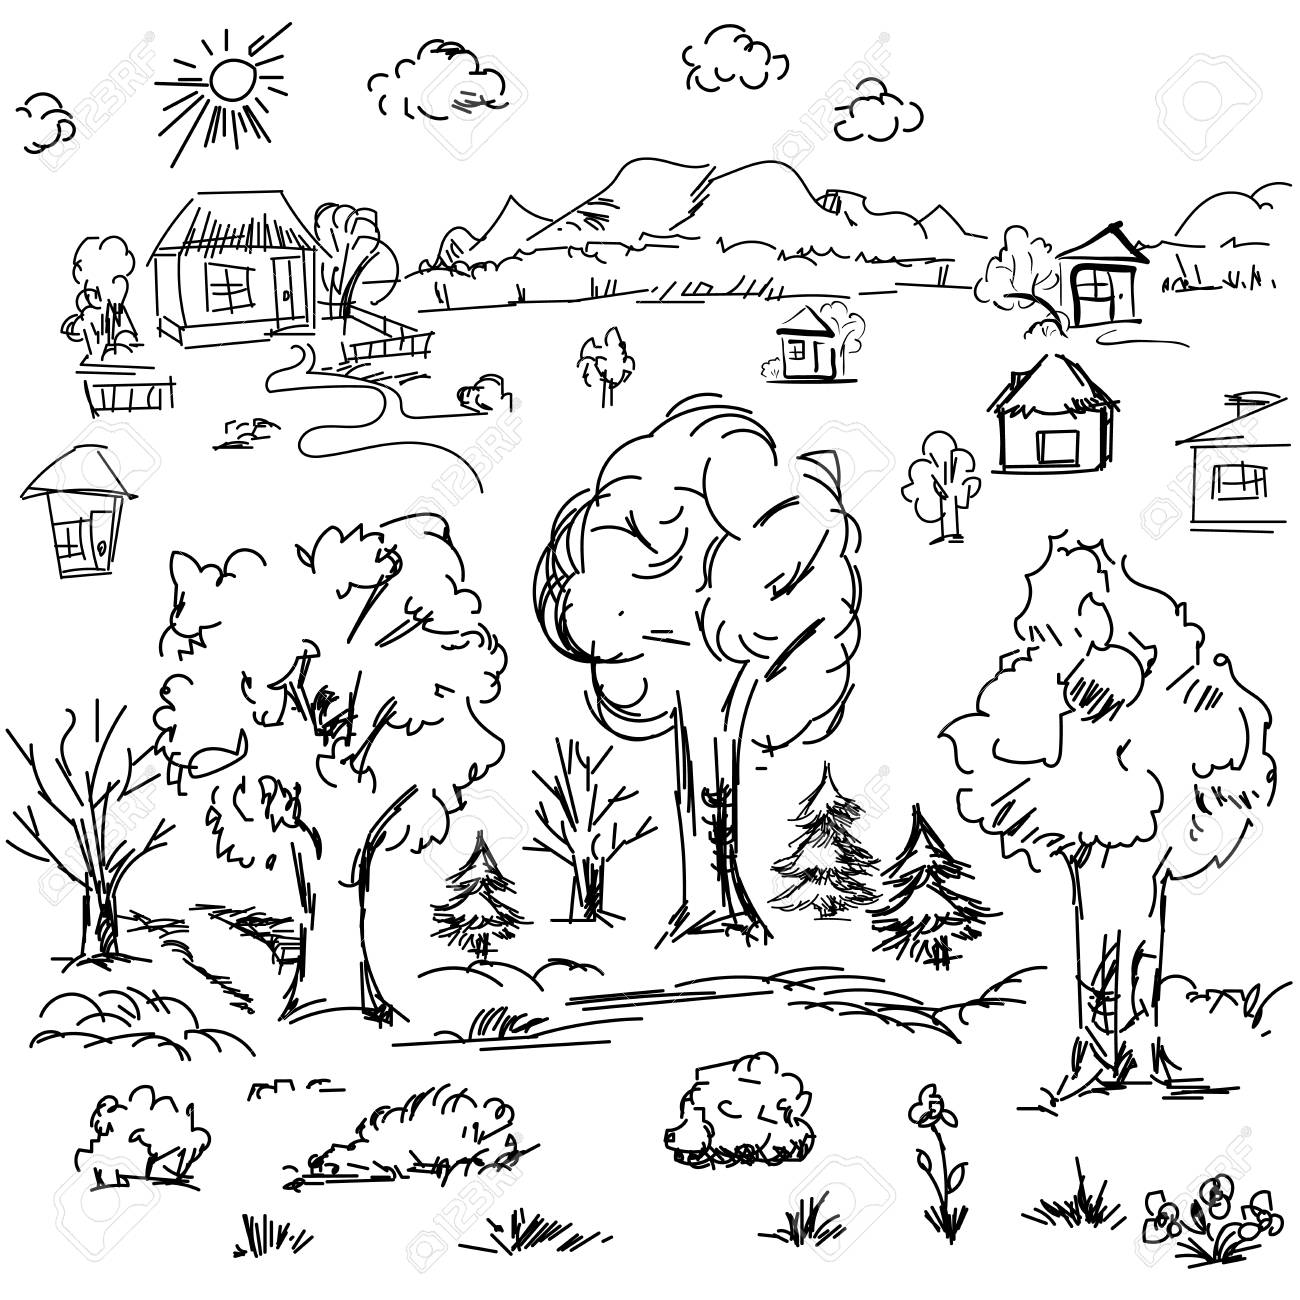 1300x1300 Elements Of Landscape In Outline. Doodle Sketch Outdoor Elements